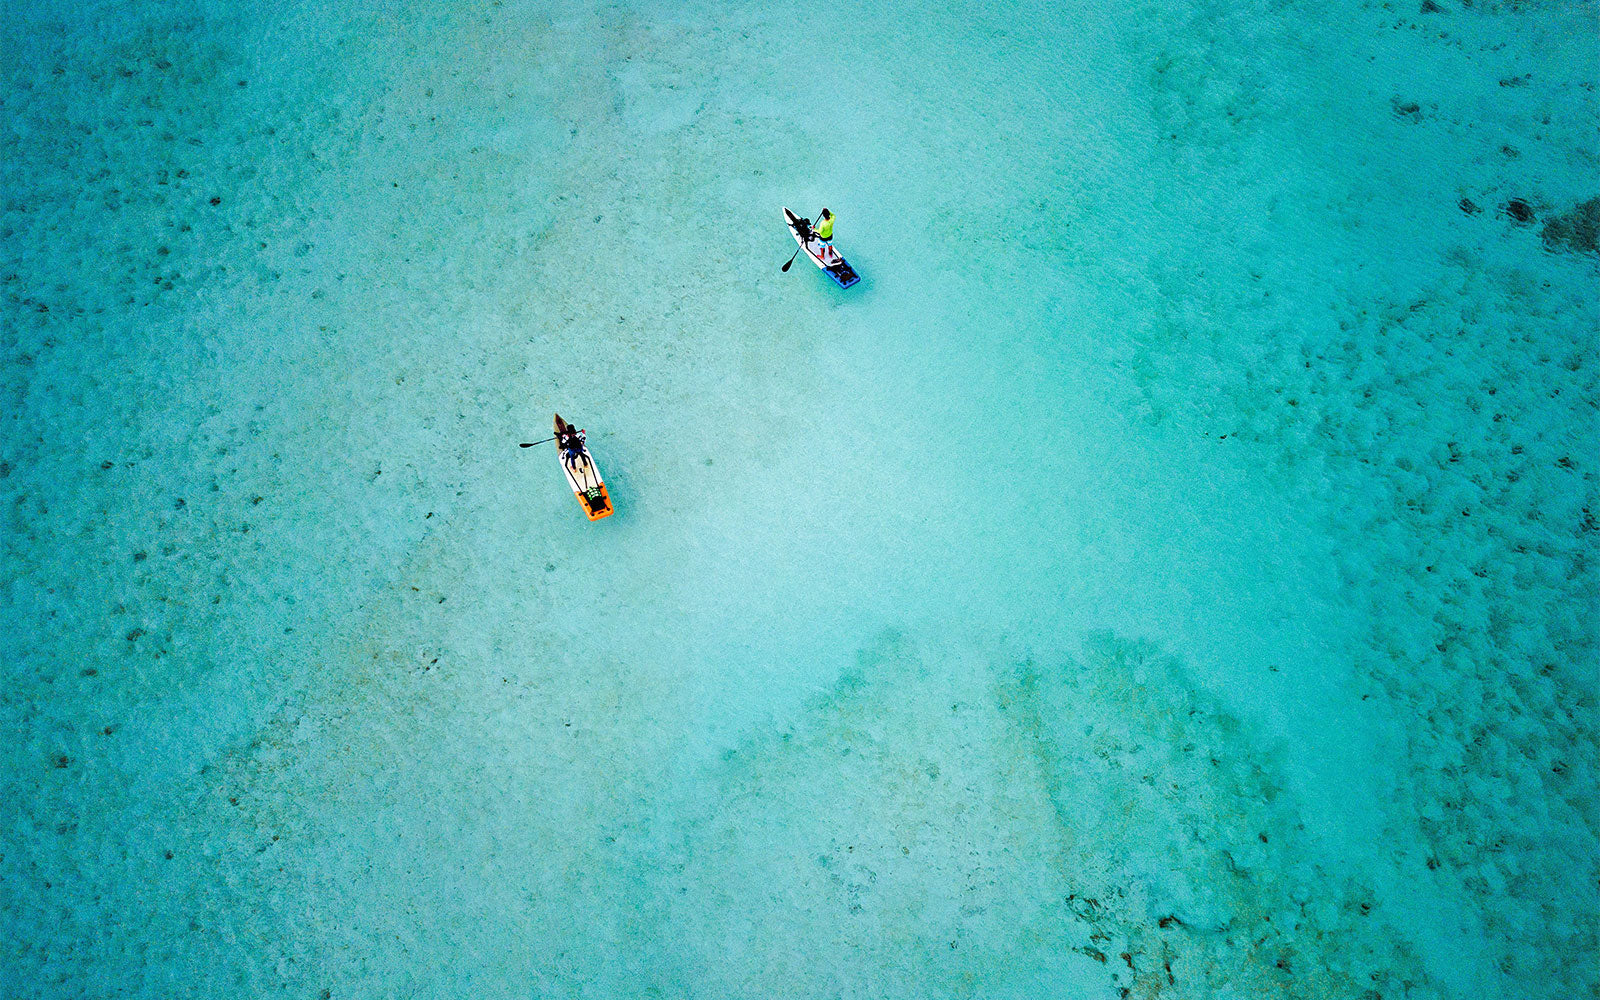 inflatable paddle boards being paddled over some blue waters